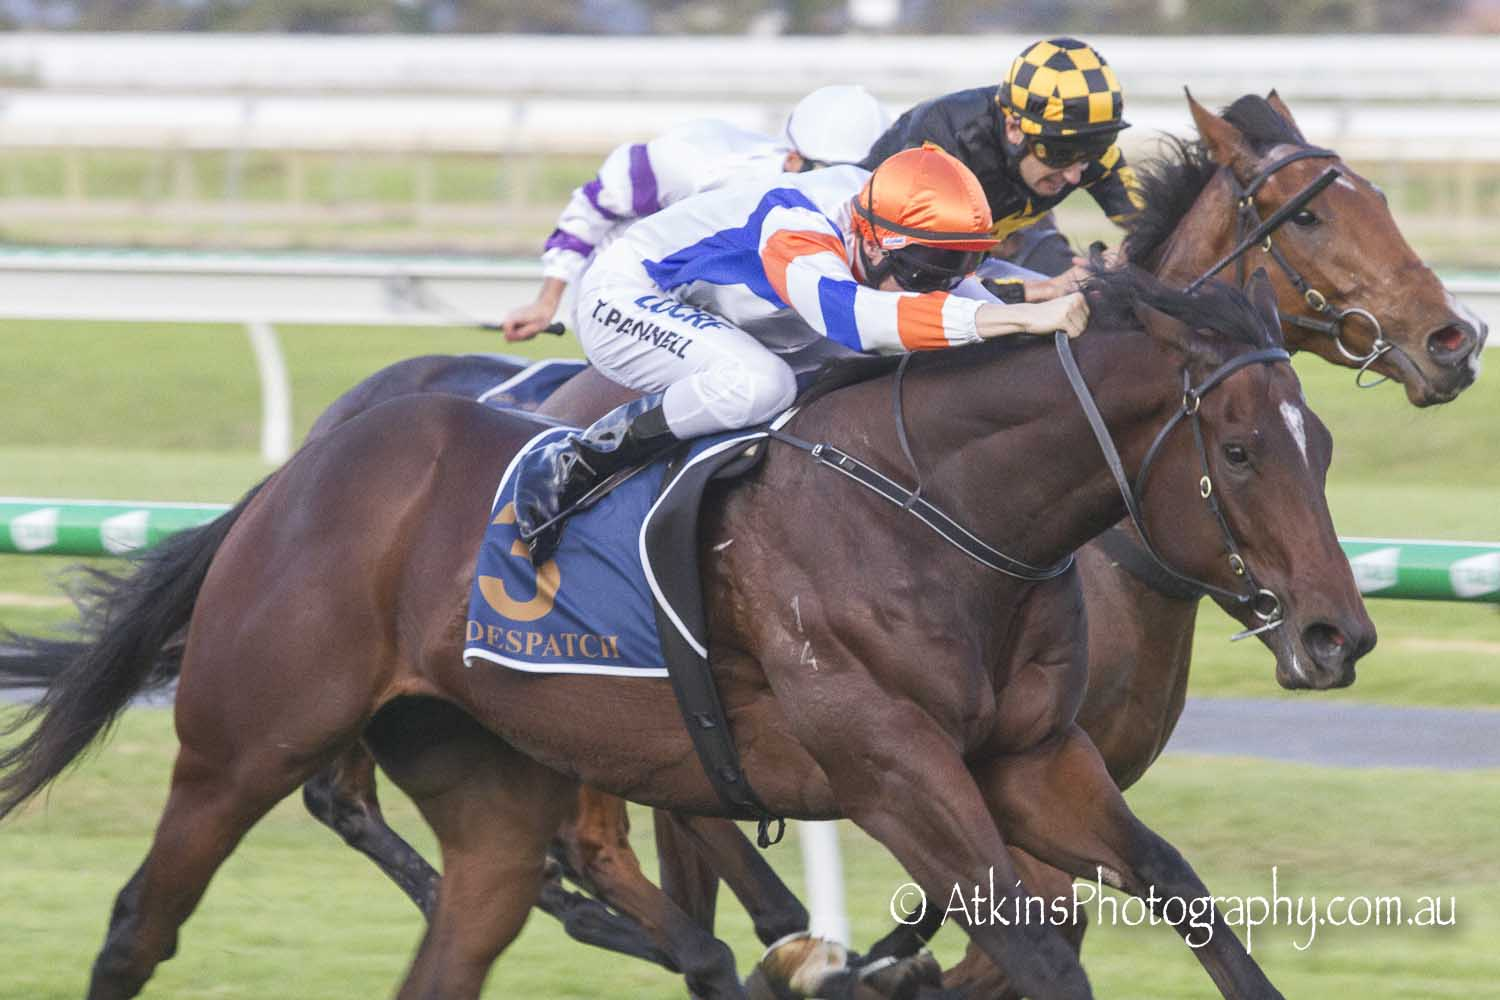 Image courtesy AtkinsPhotography.com.au - Poetry in motion - Todd Pannell coaxes Despatch to a narrow win in the Goodwood Handicap.